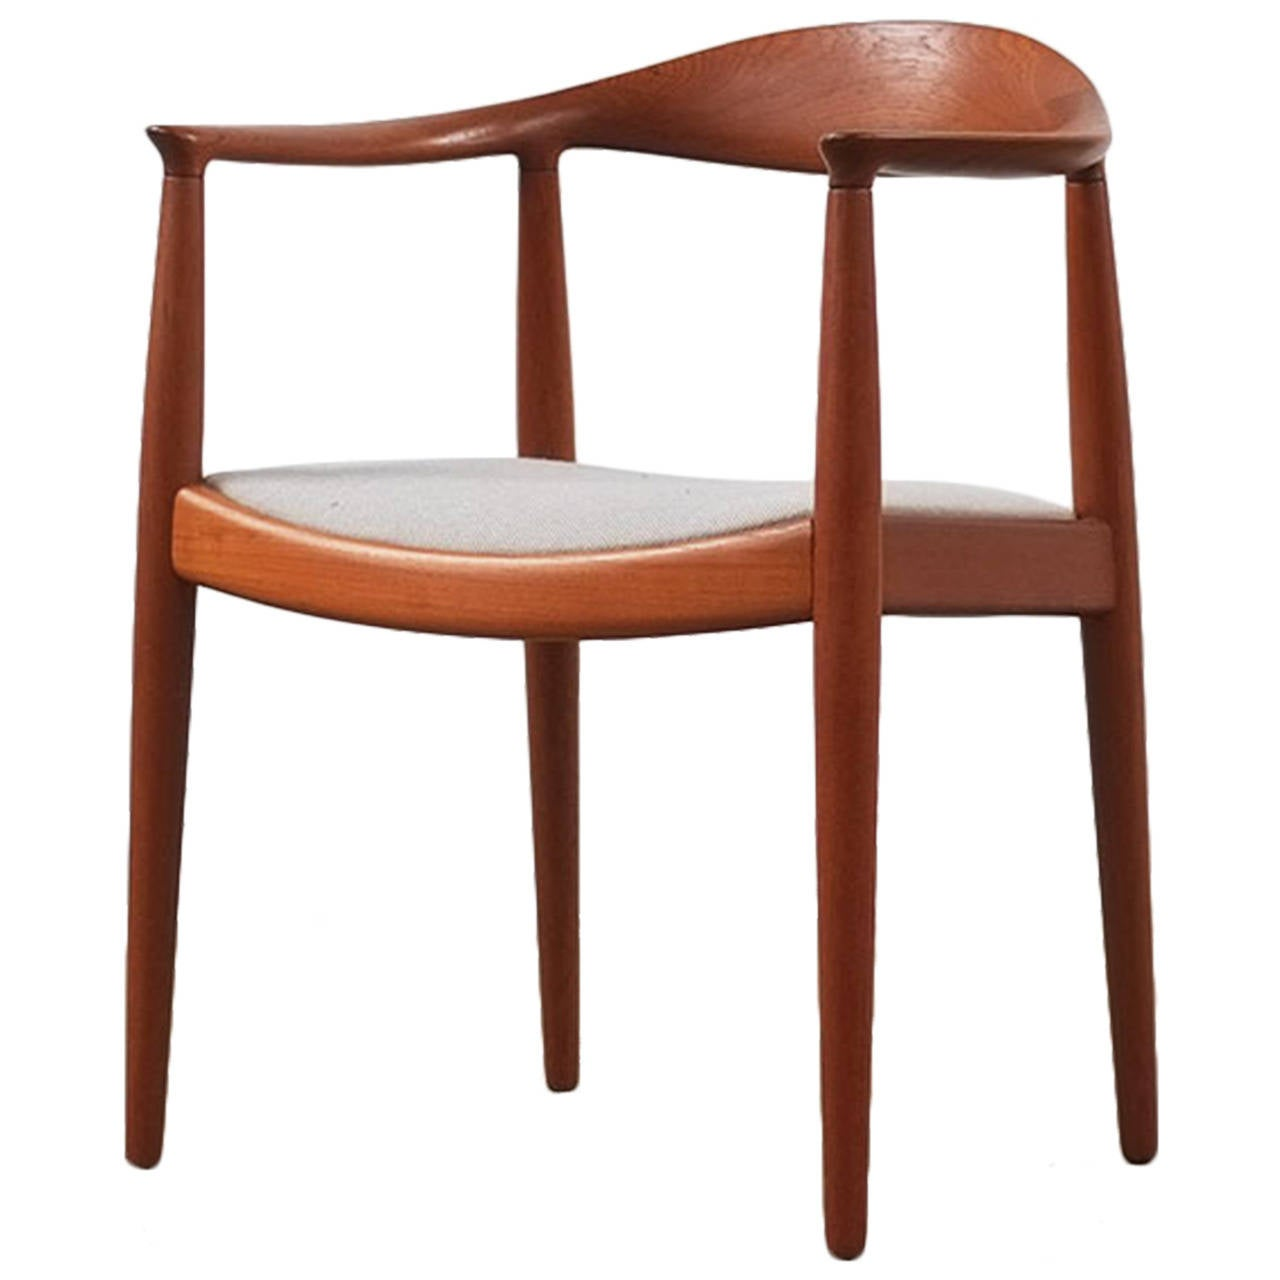 hans wegner round chair at 1stdibs. Black Bedroom Furniture Sets. Home Design Ideas